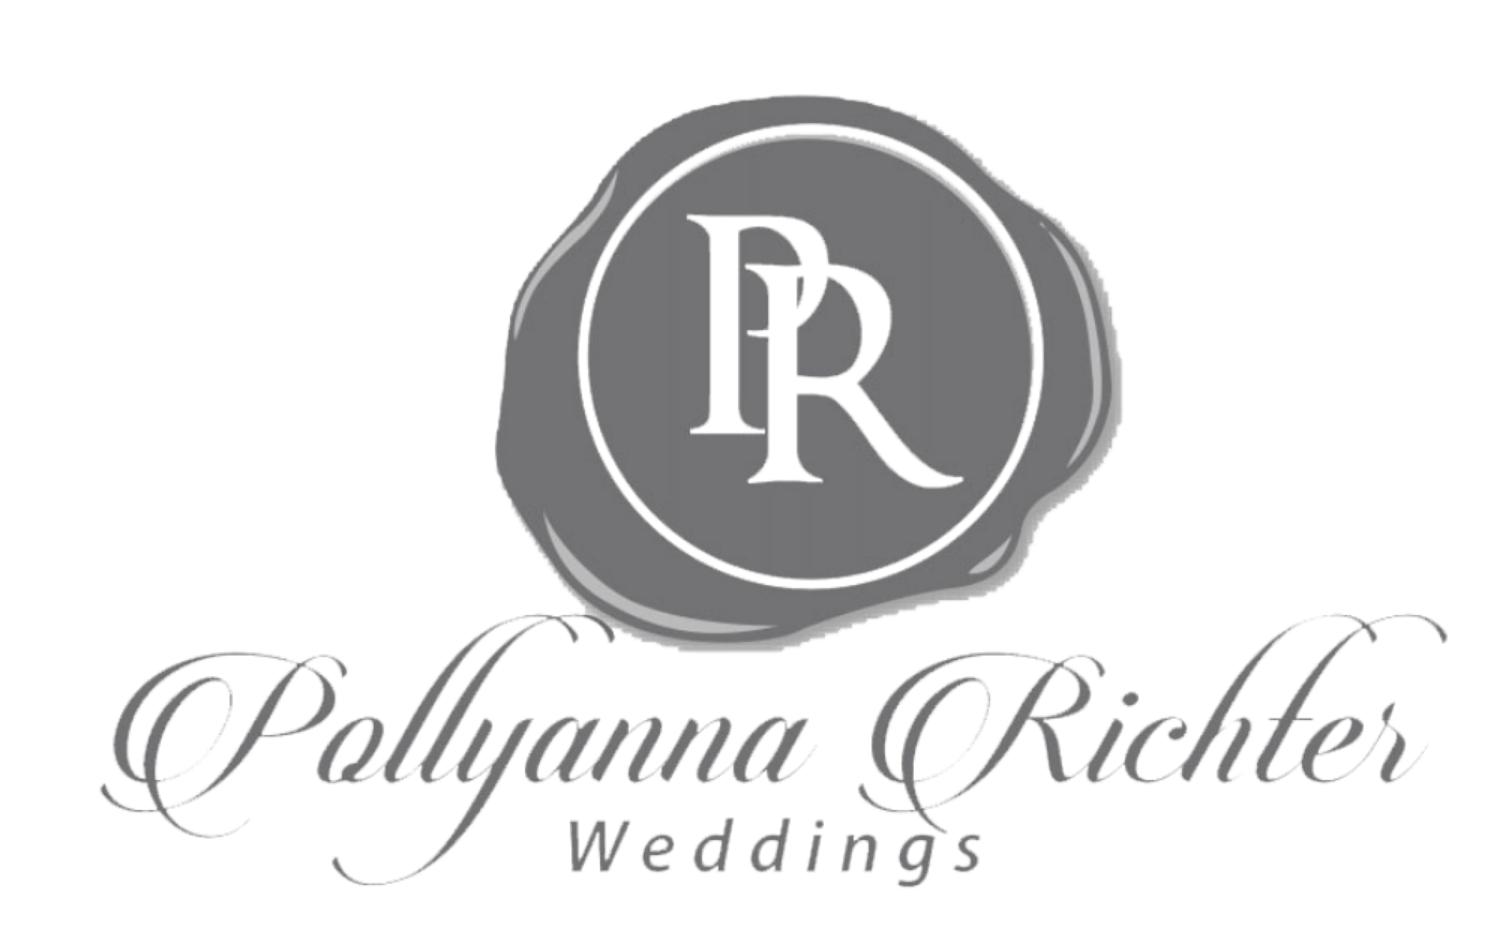 Atlanta Certified Wedding Planner - The Art of Storytelling Elegant and Timeless Weddings